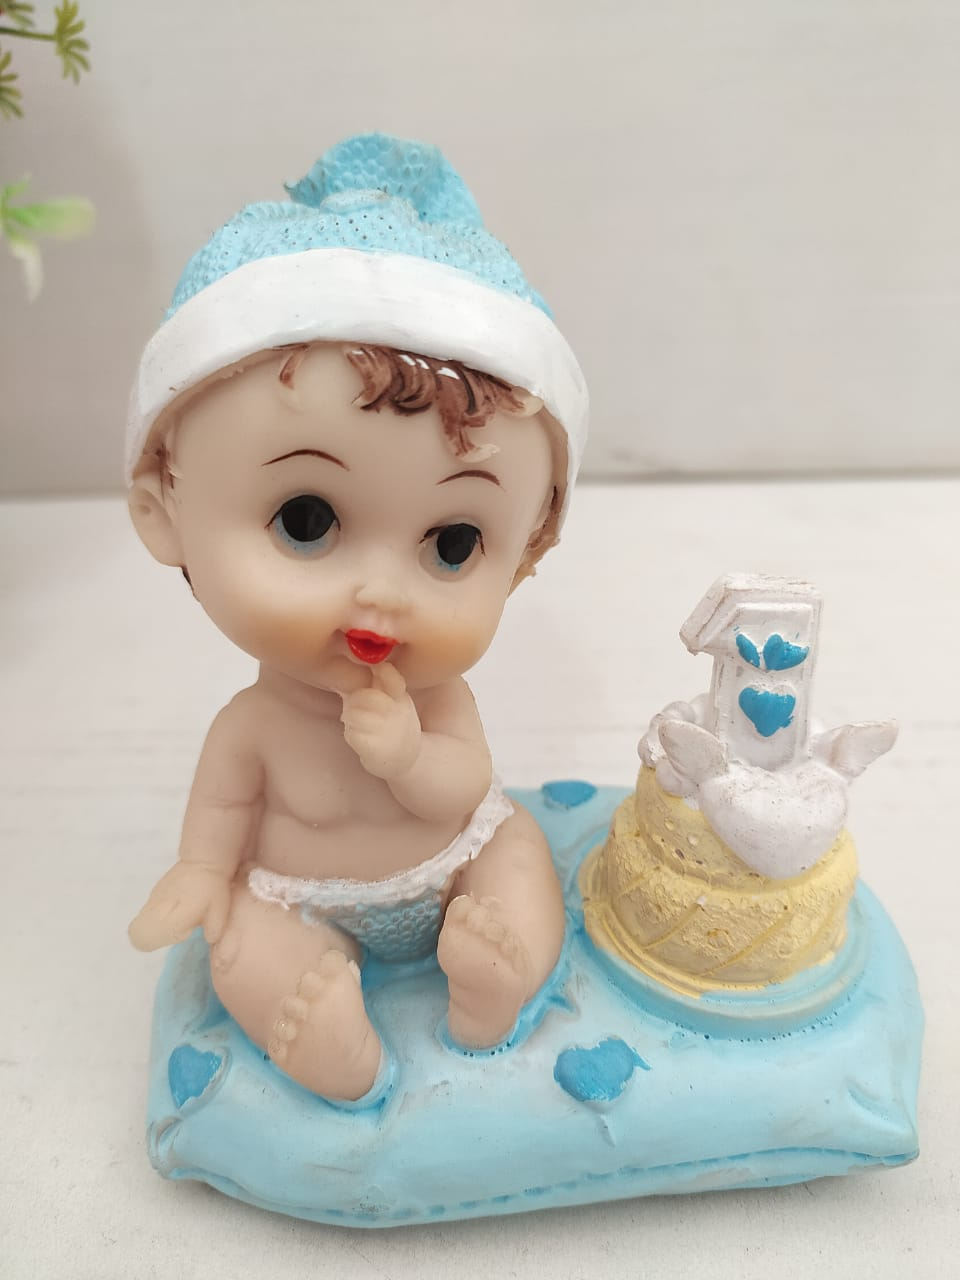 Buy Cute baby showpiece for baby shower gifting  DLM171 Online